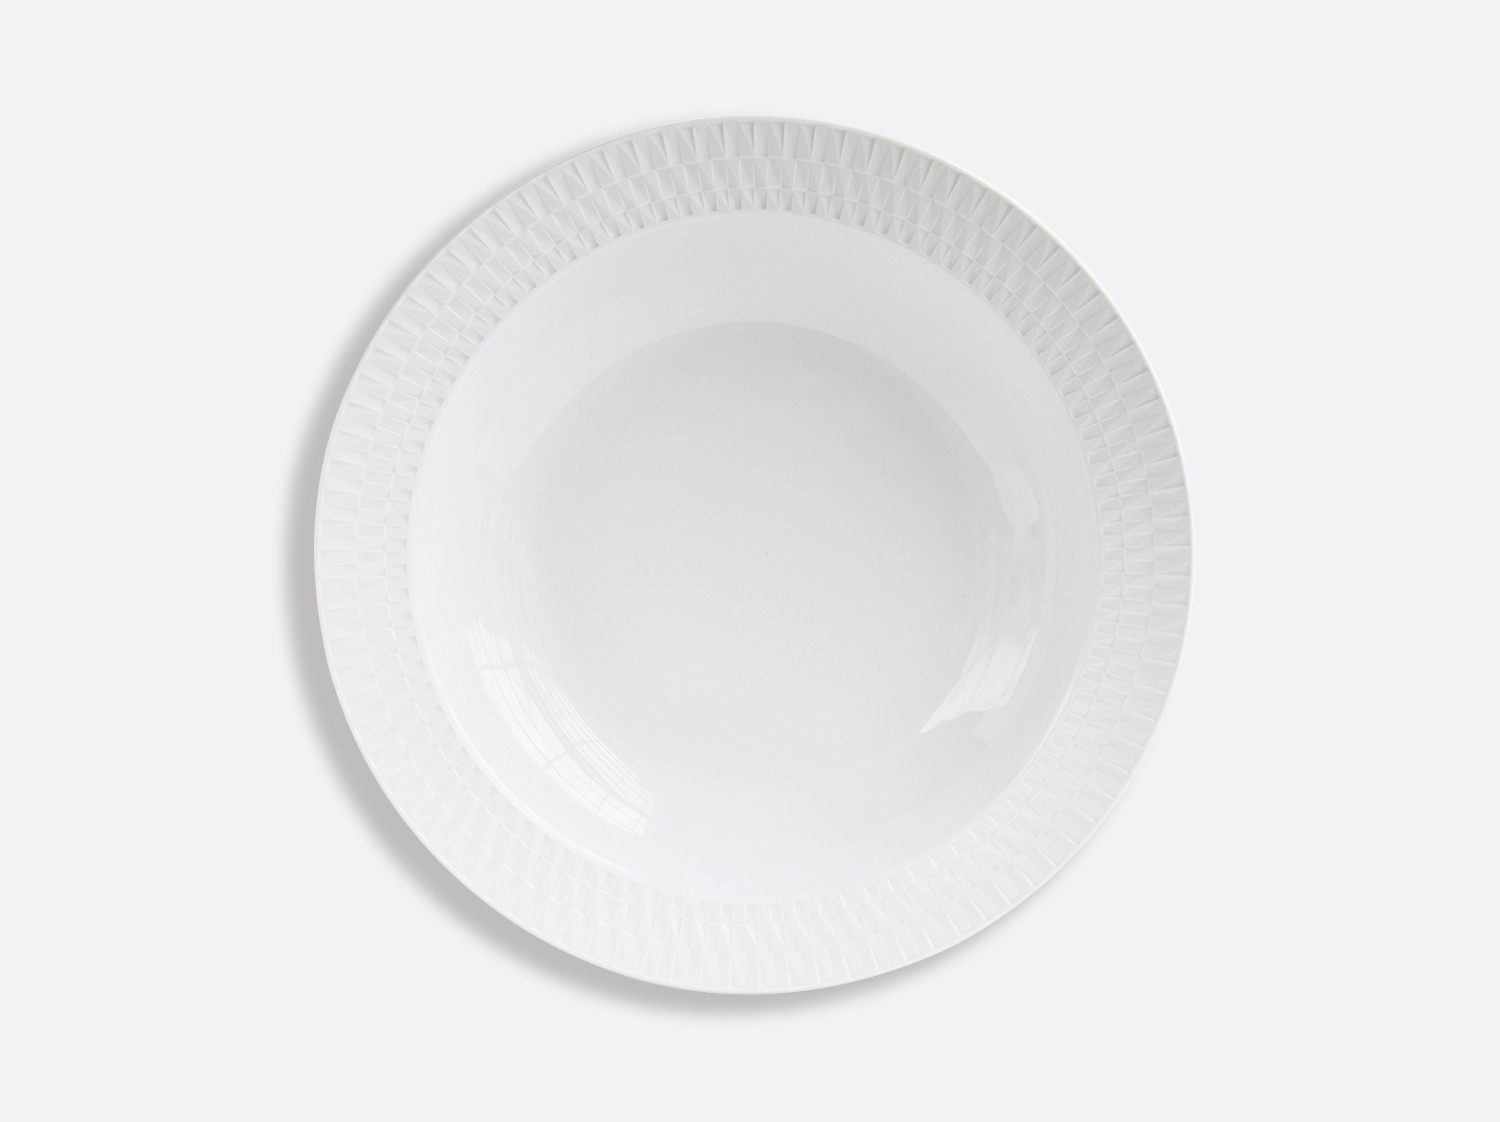 Plat rond creux 29 cm en porcelaine de la collection Twist Bernardaud